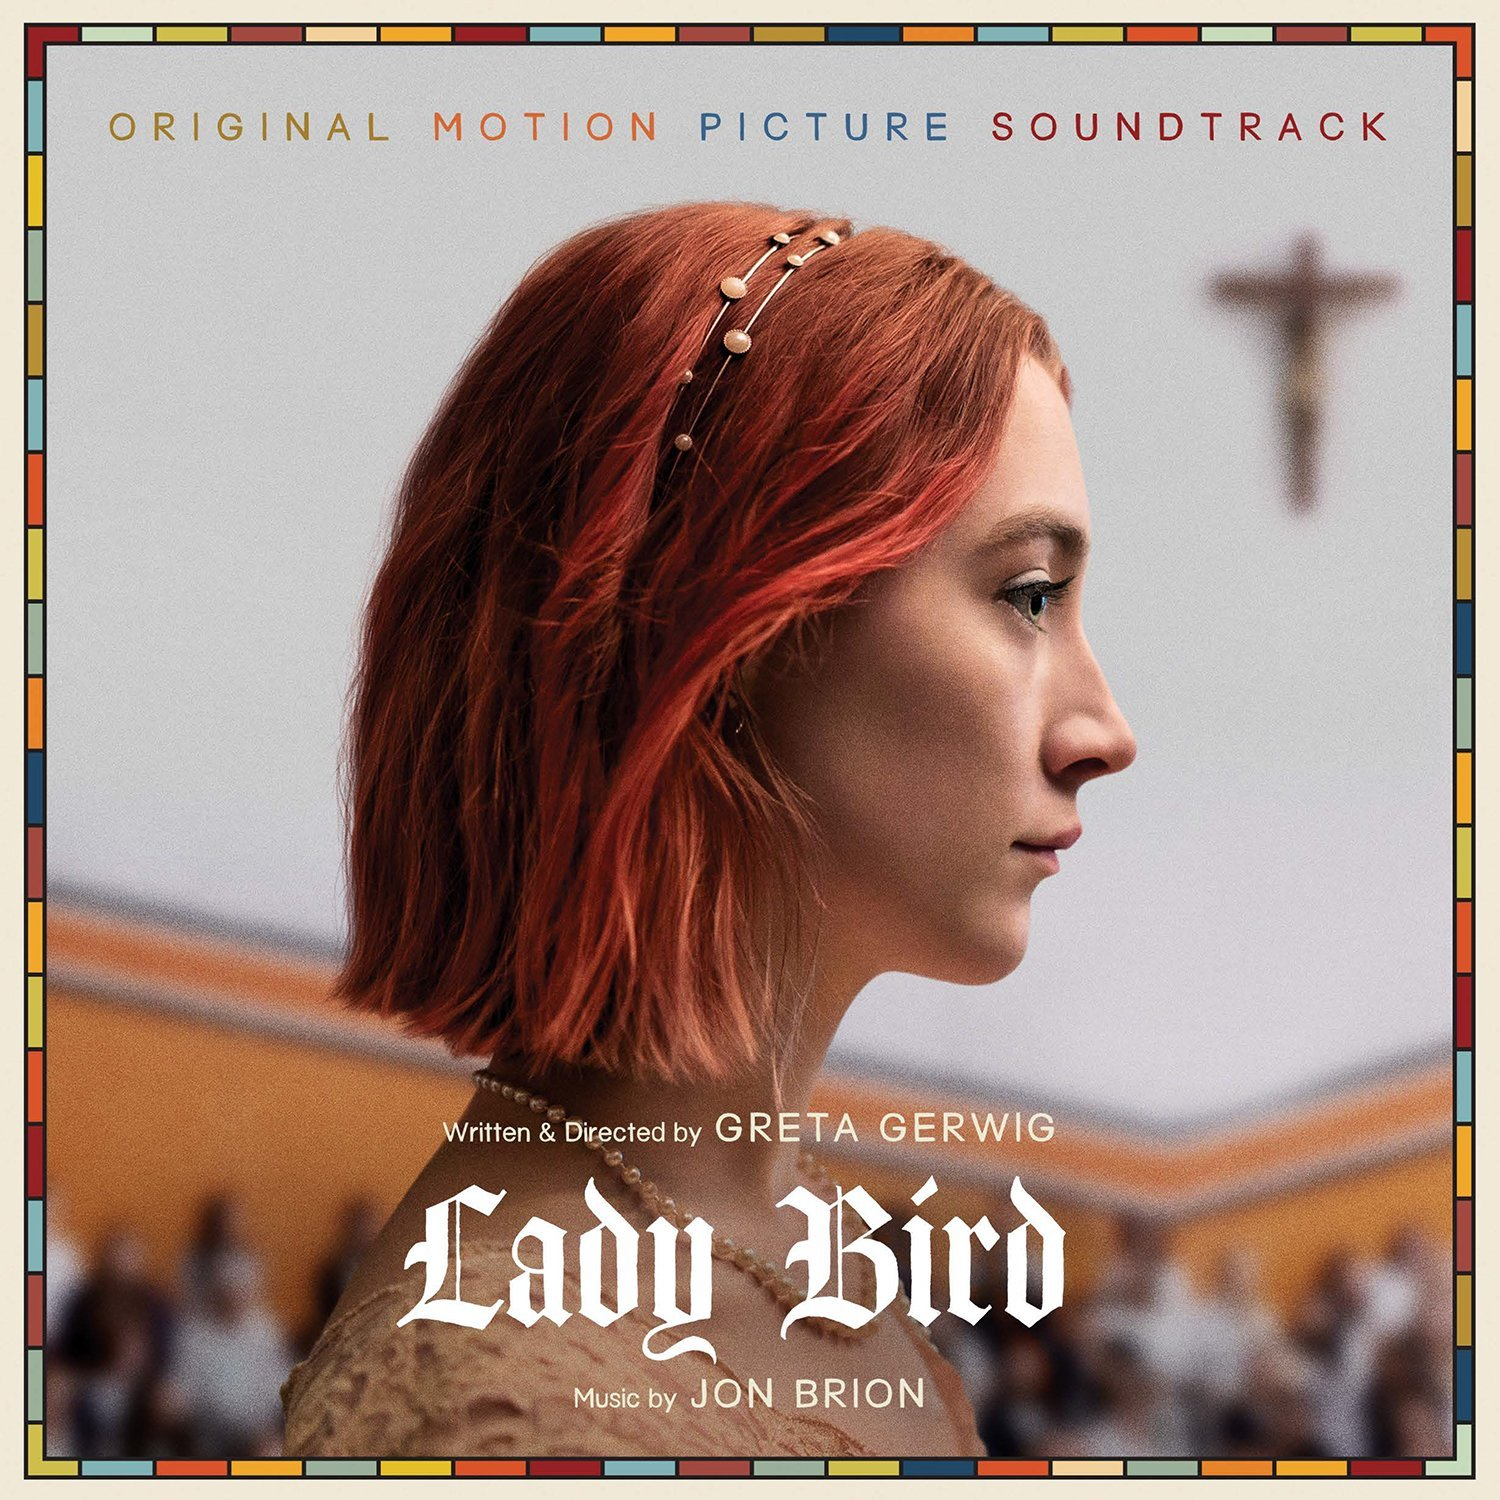 Lady Bird [Movie] - Lady Bird [LP Soundtrack]